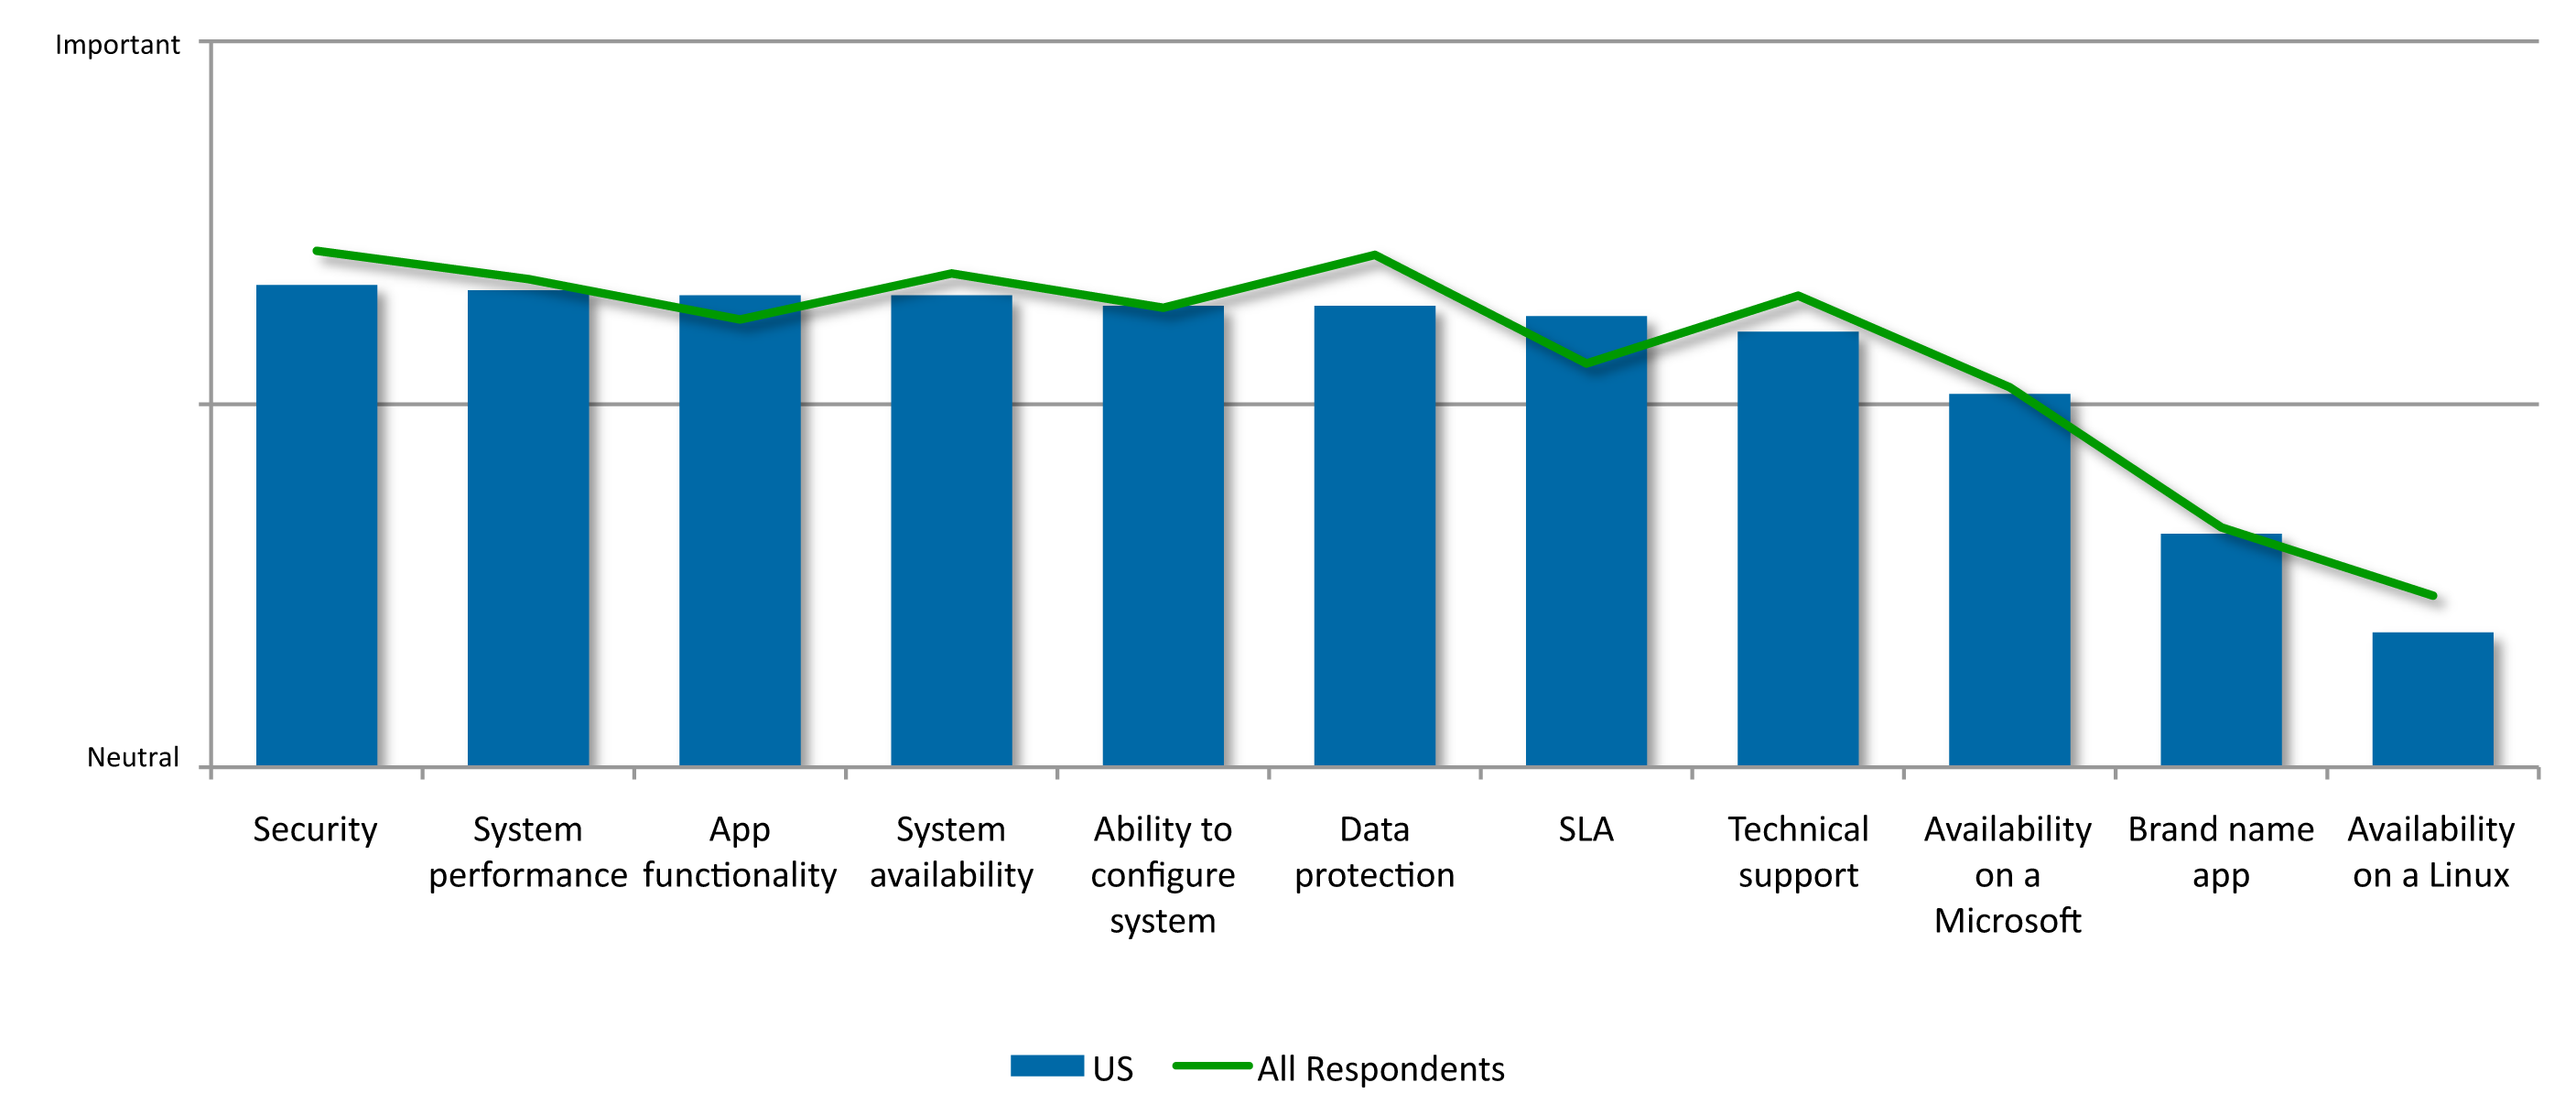 In the US, the attributes of Security, Availability, Performance and Application Functionality ranked as the most important.